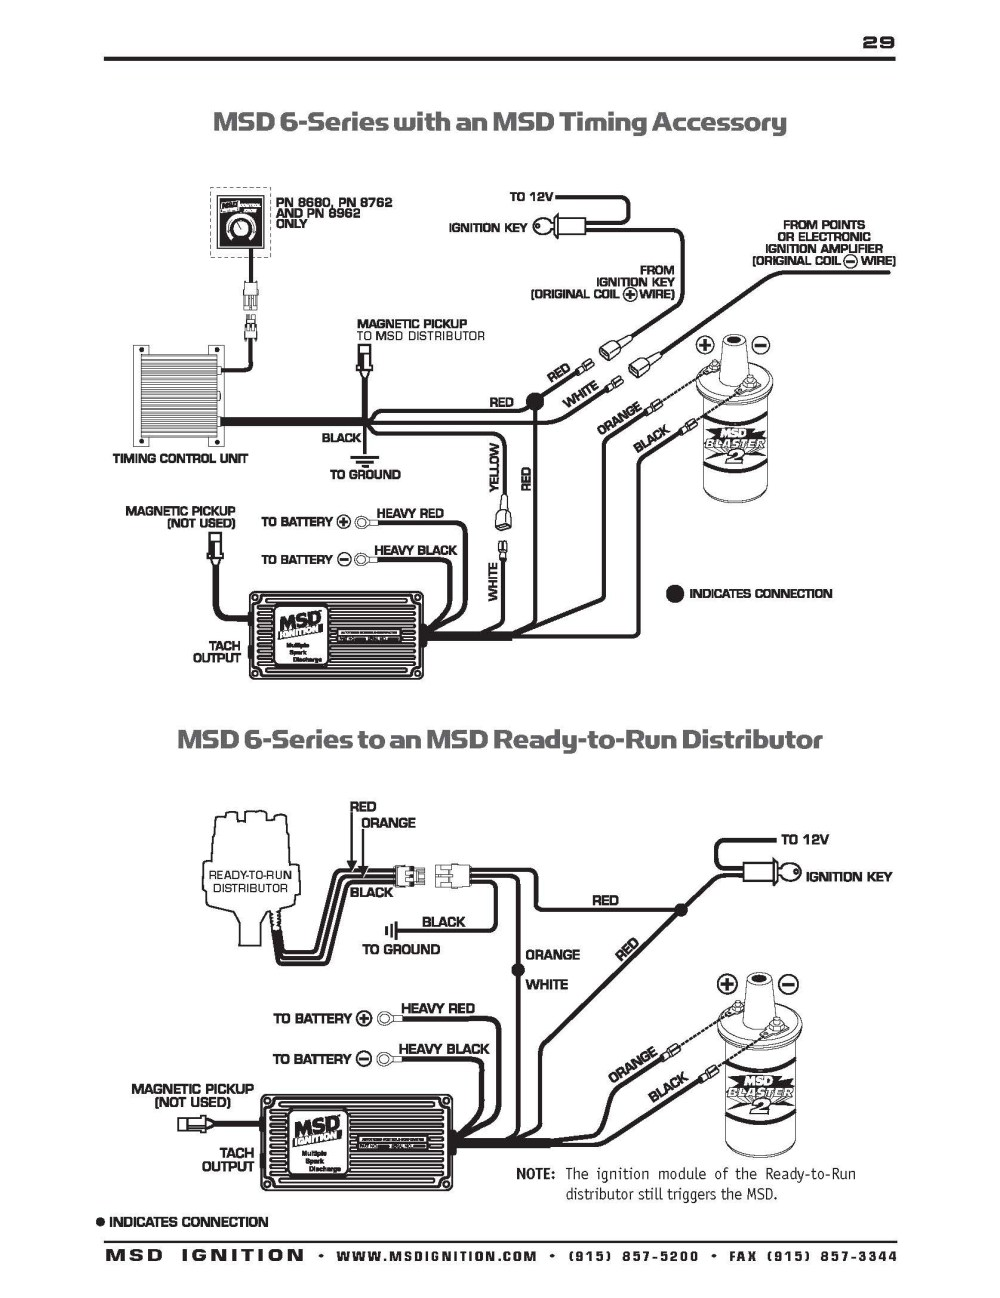 medium resolution of msd 5 wiring diagram current wiring diagram databasemsd 6btm wiring diagram wiring diagram toolbox msd 5